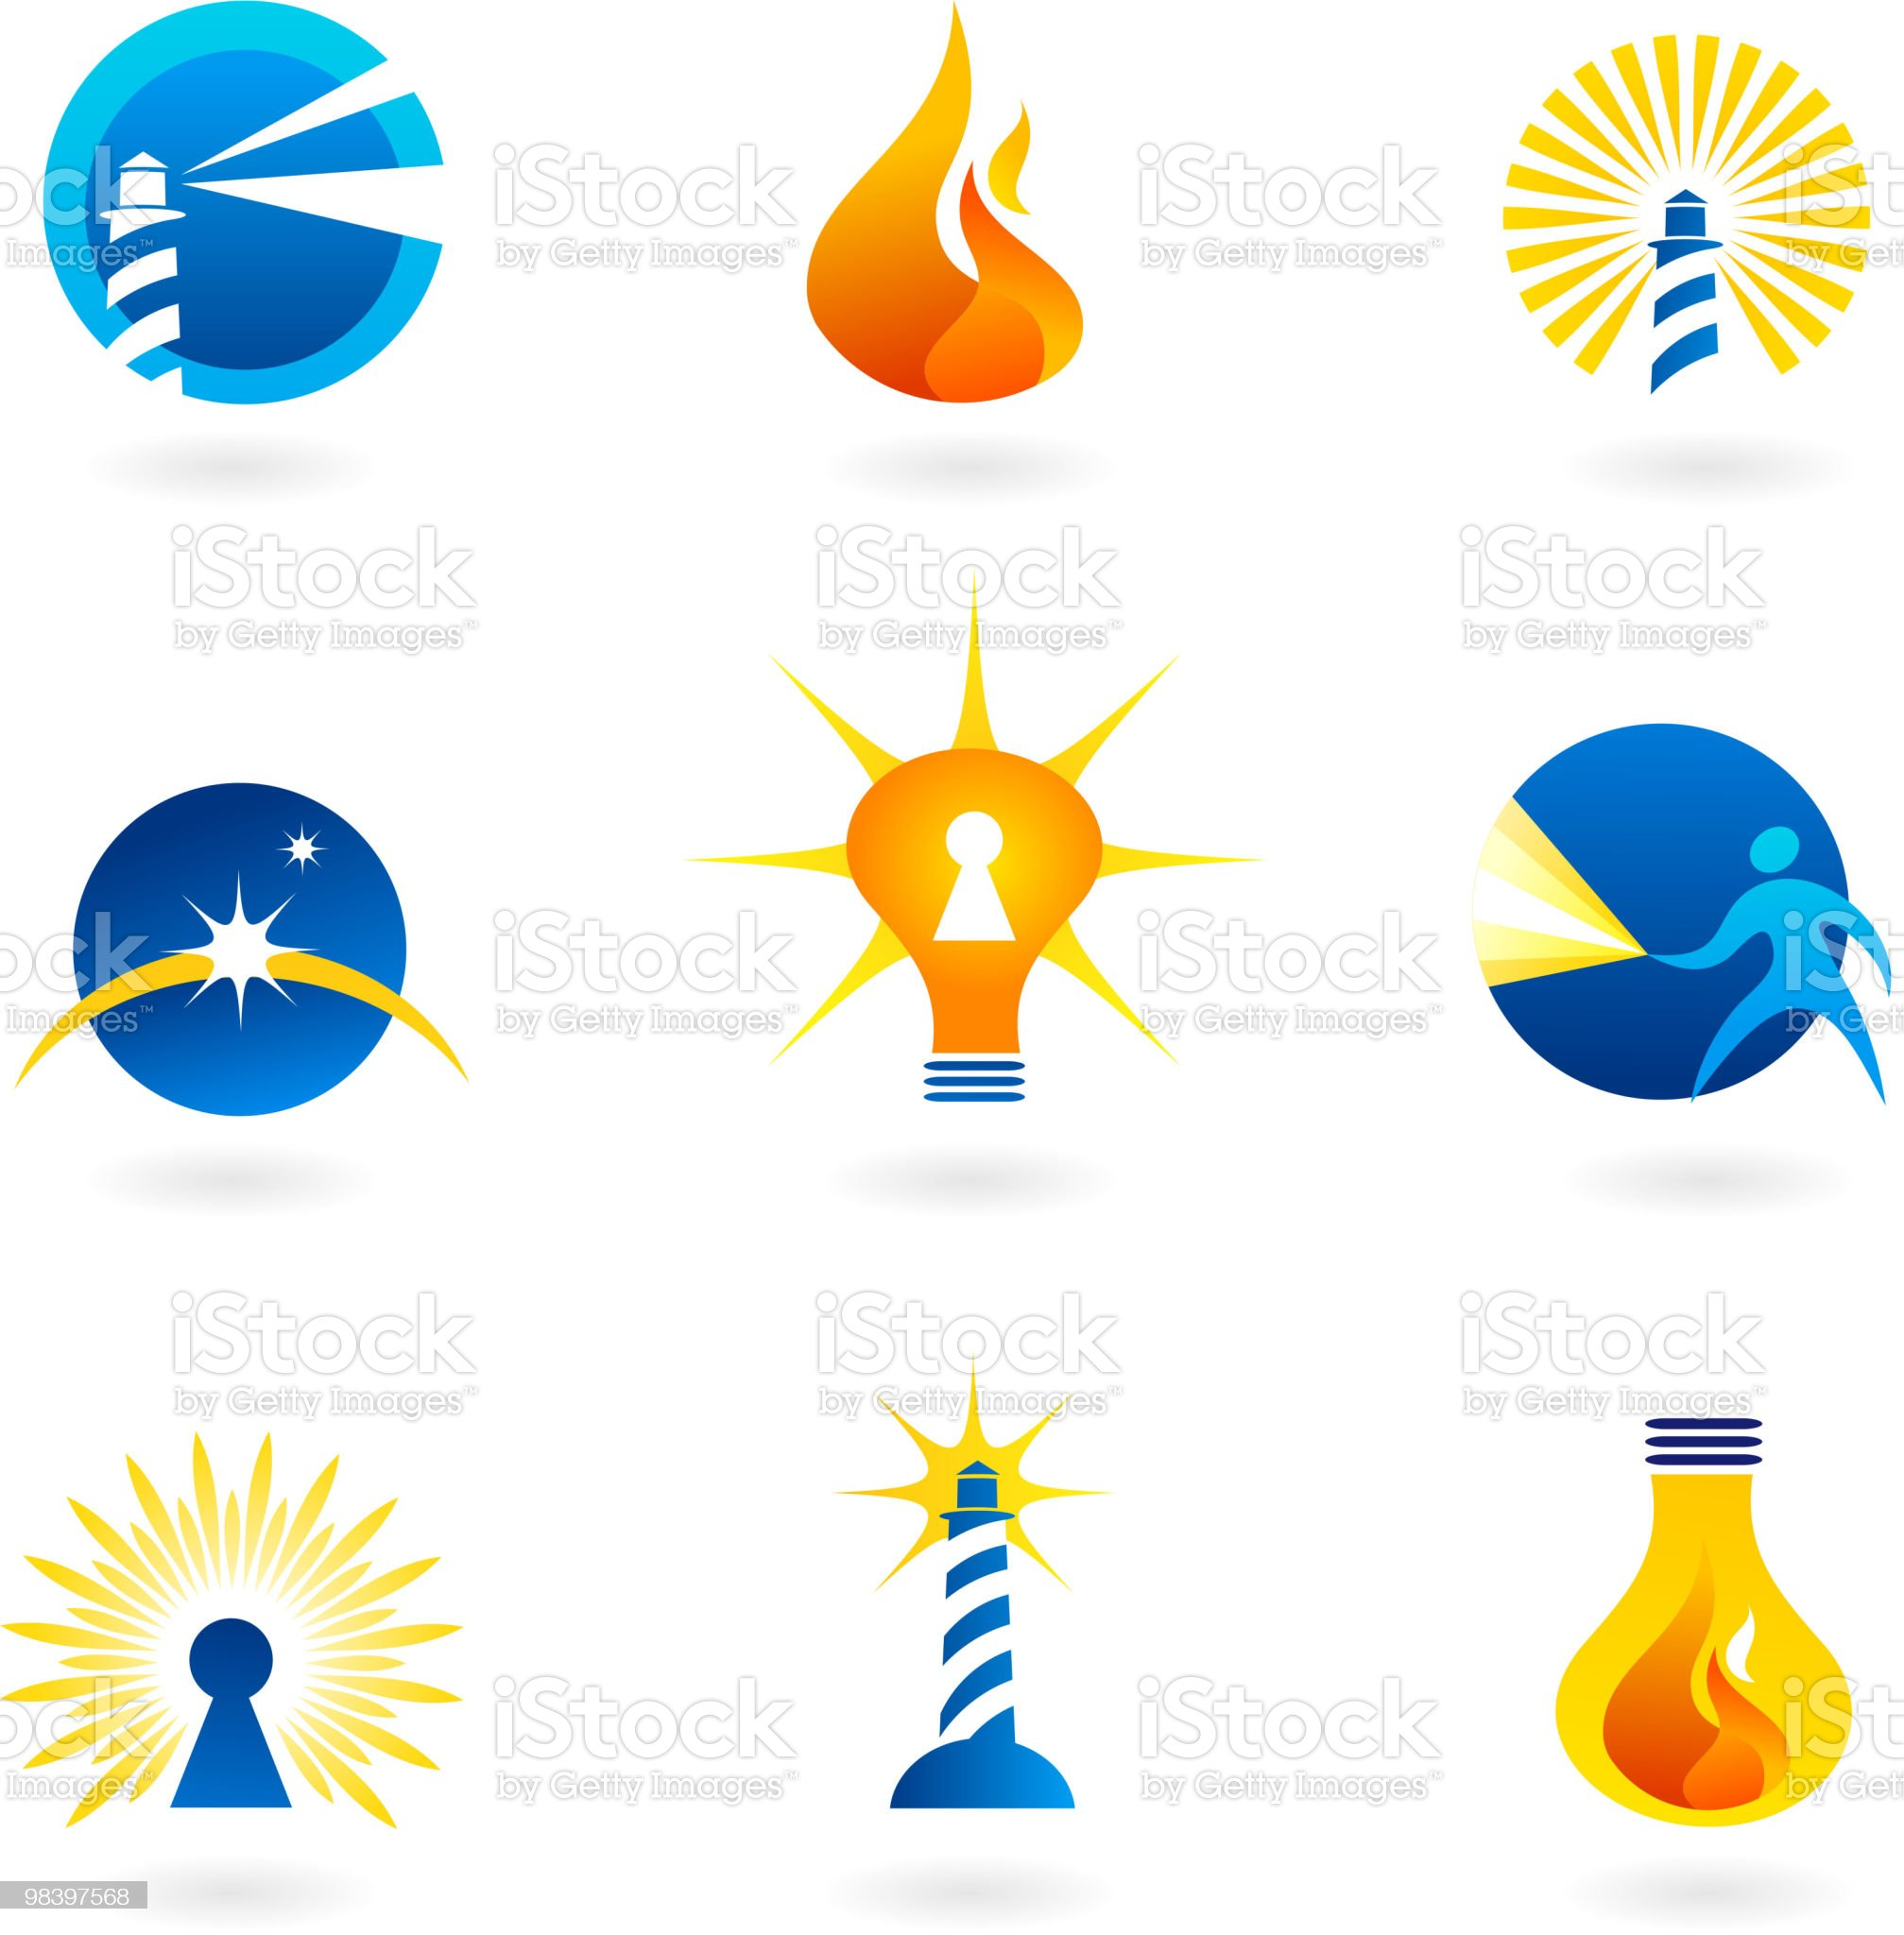 Lamps, lighthouse, light-bulb and light icons royalty-free stock vector art